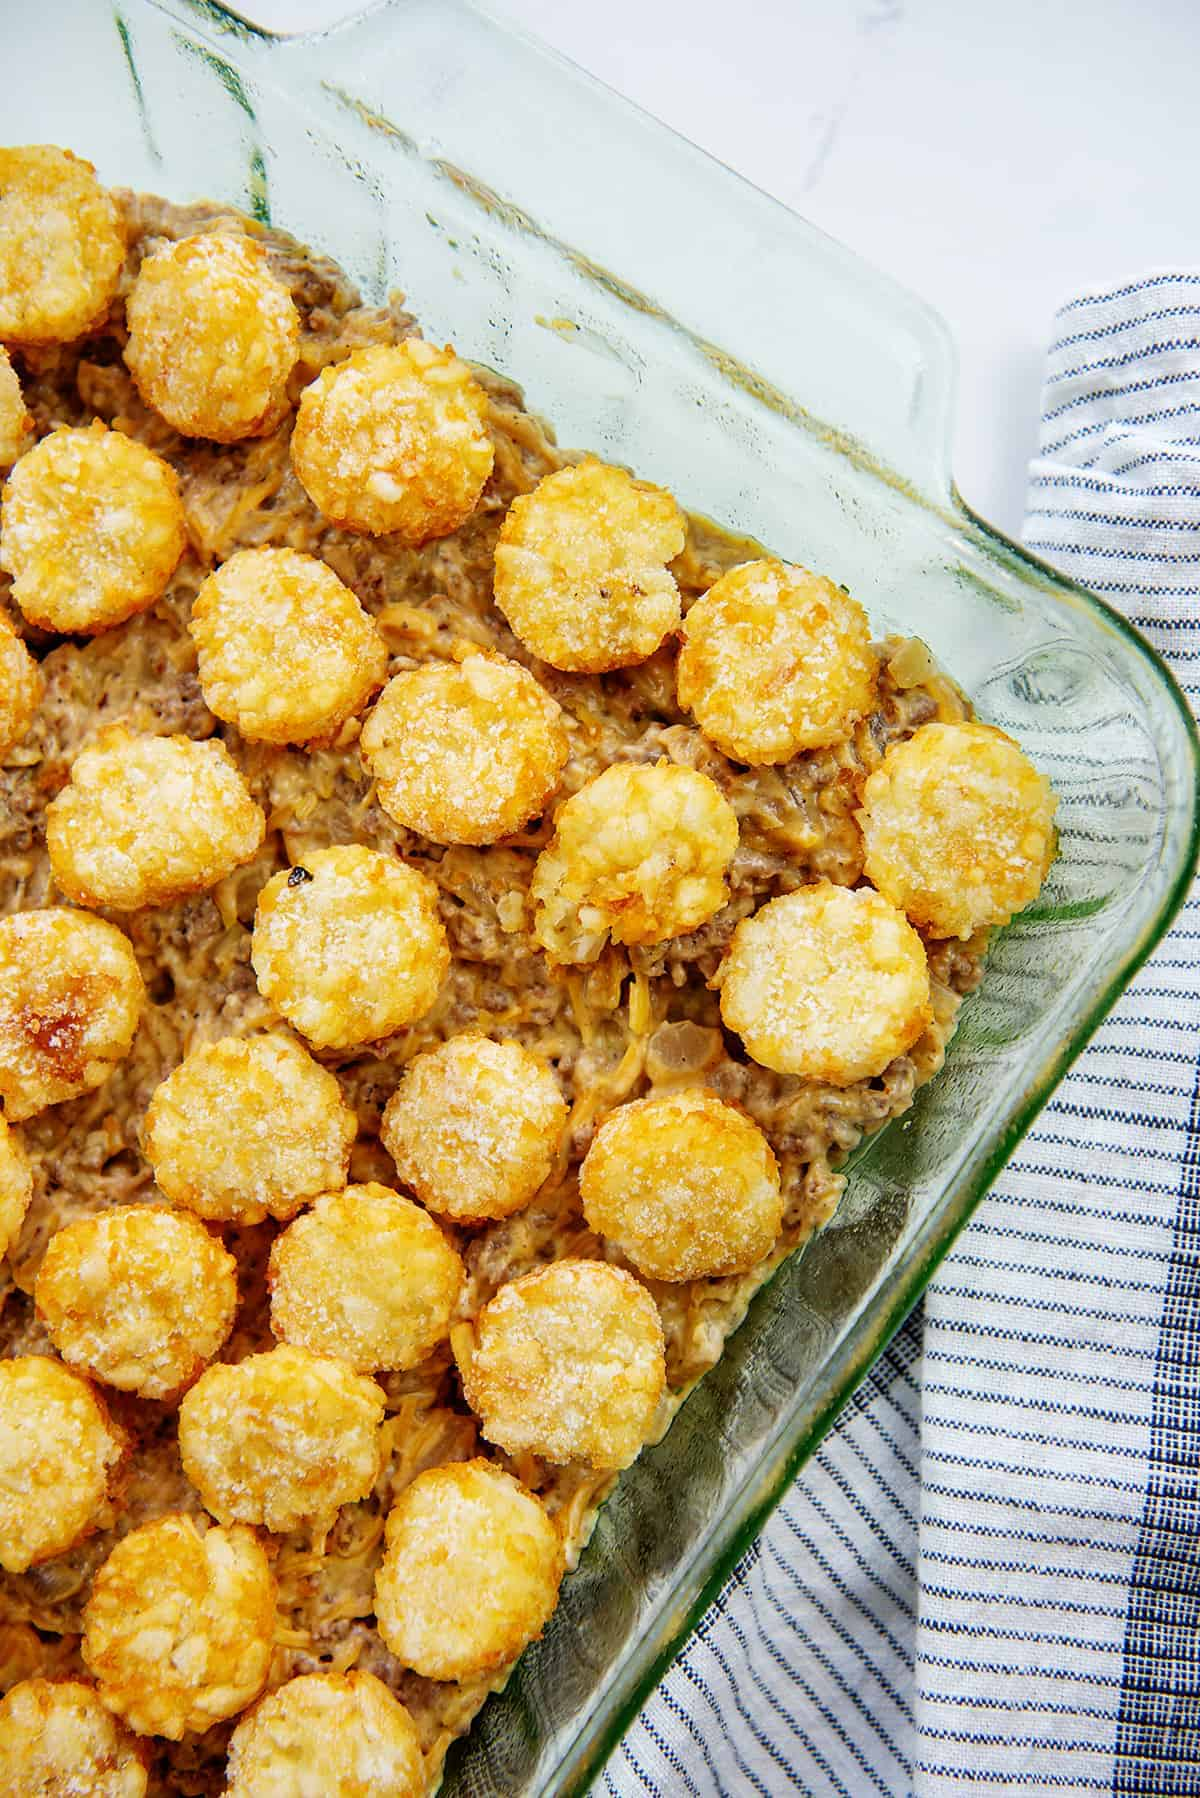 cheeseburger casserole topped with tater tots in glass baking dish.